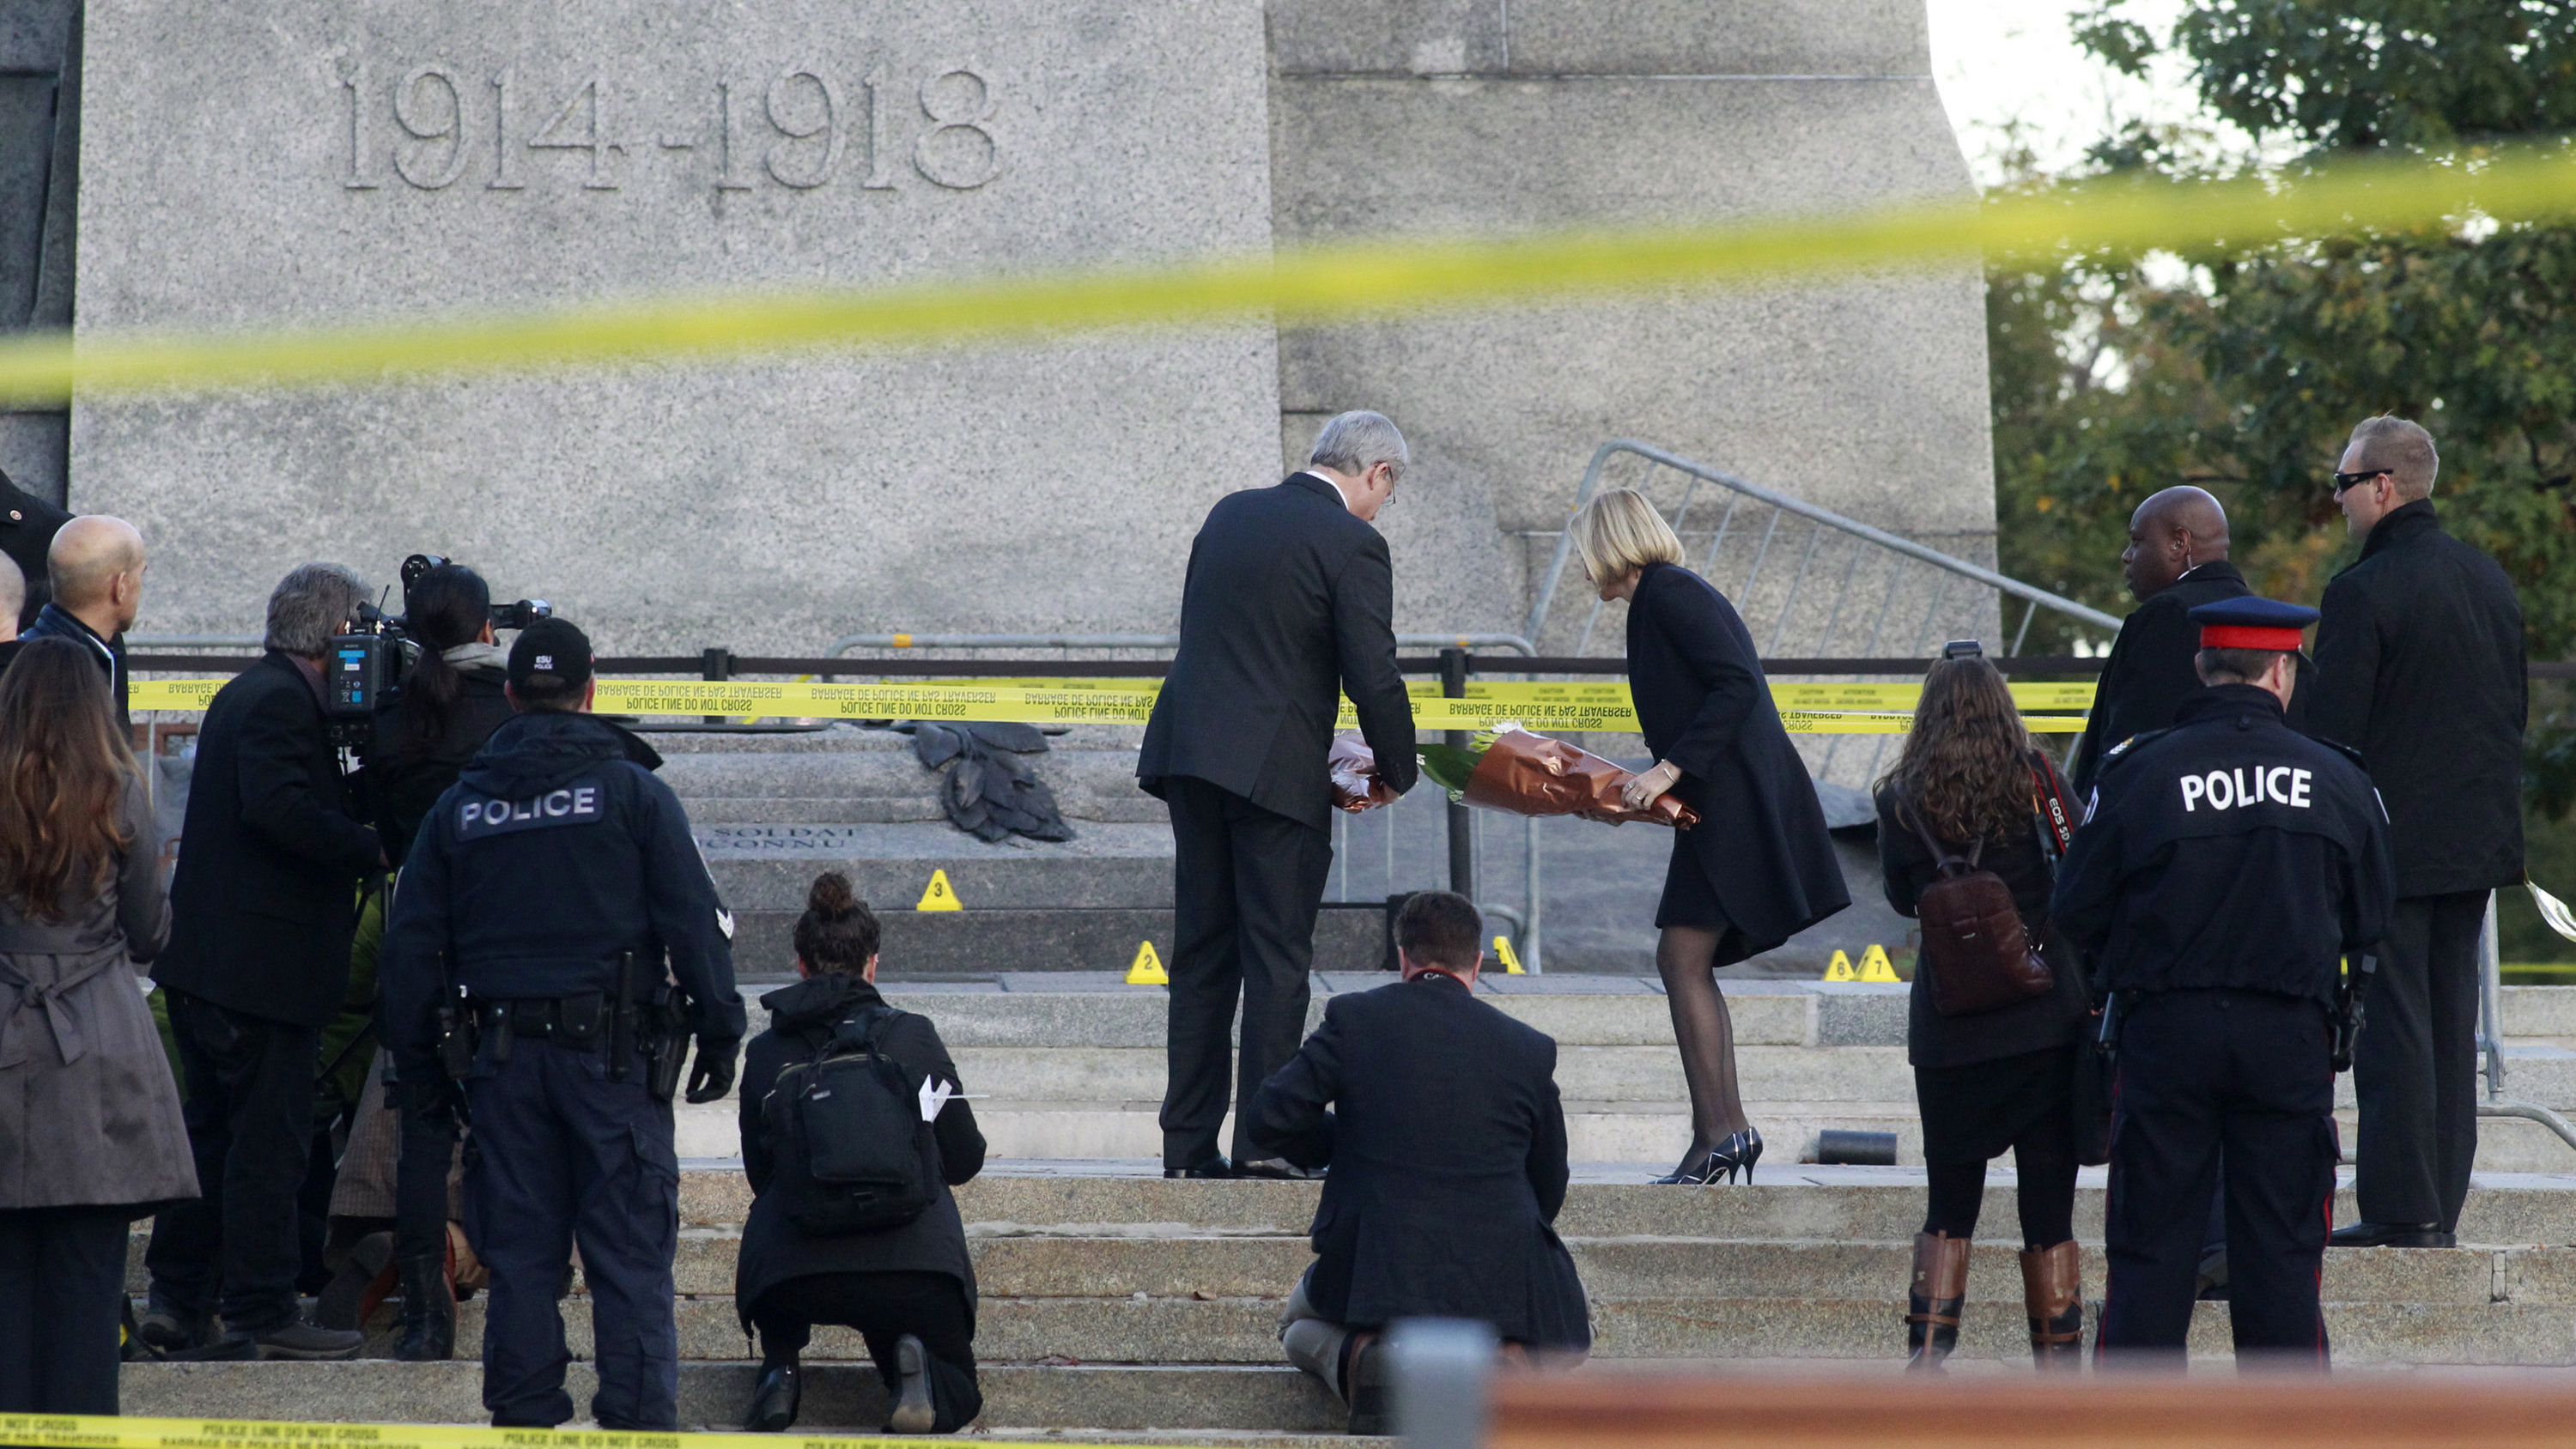 Prime Minister and wife at war memorial